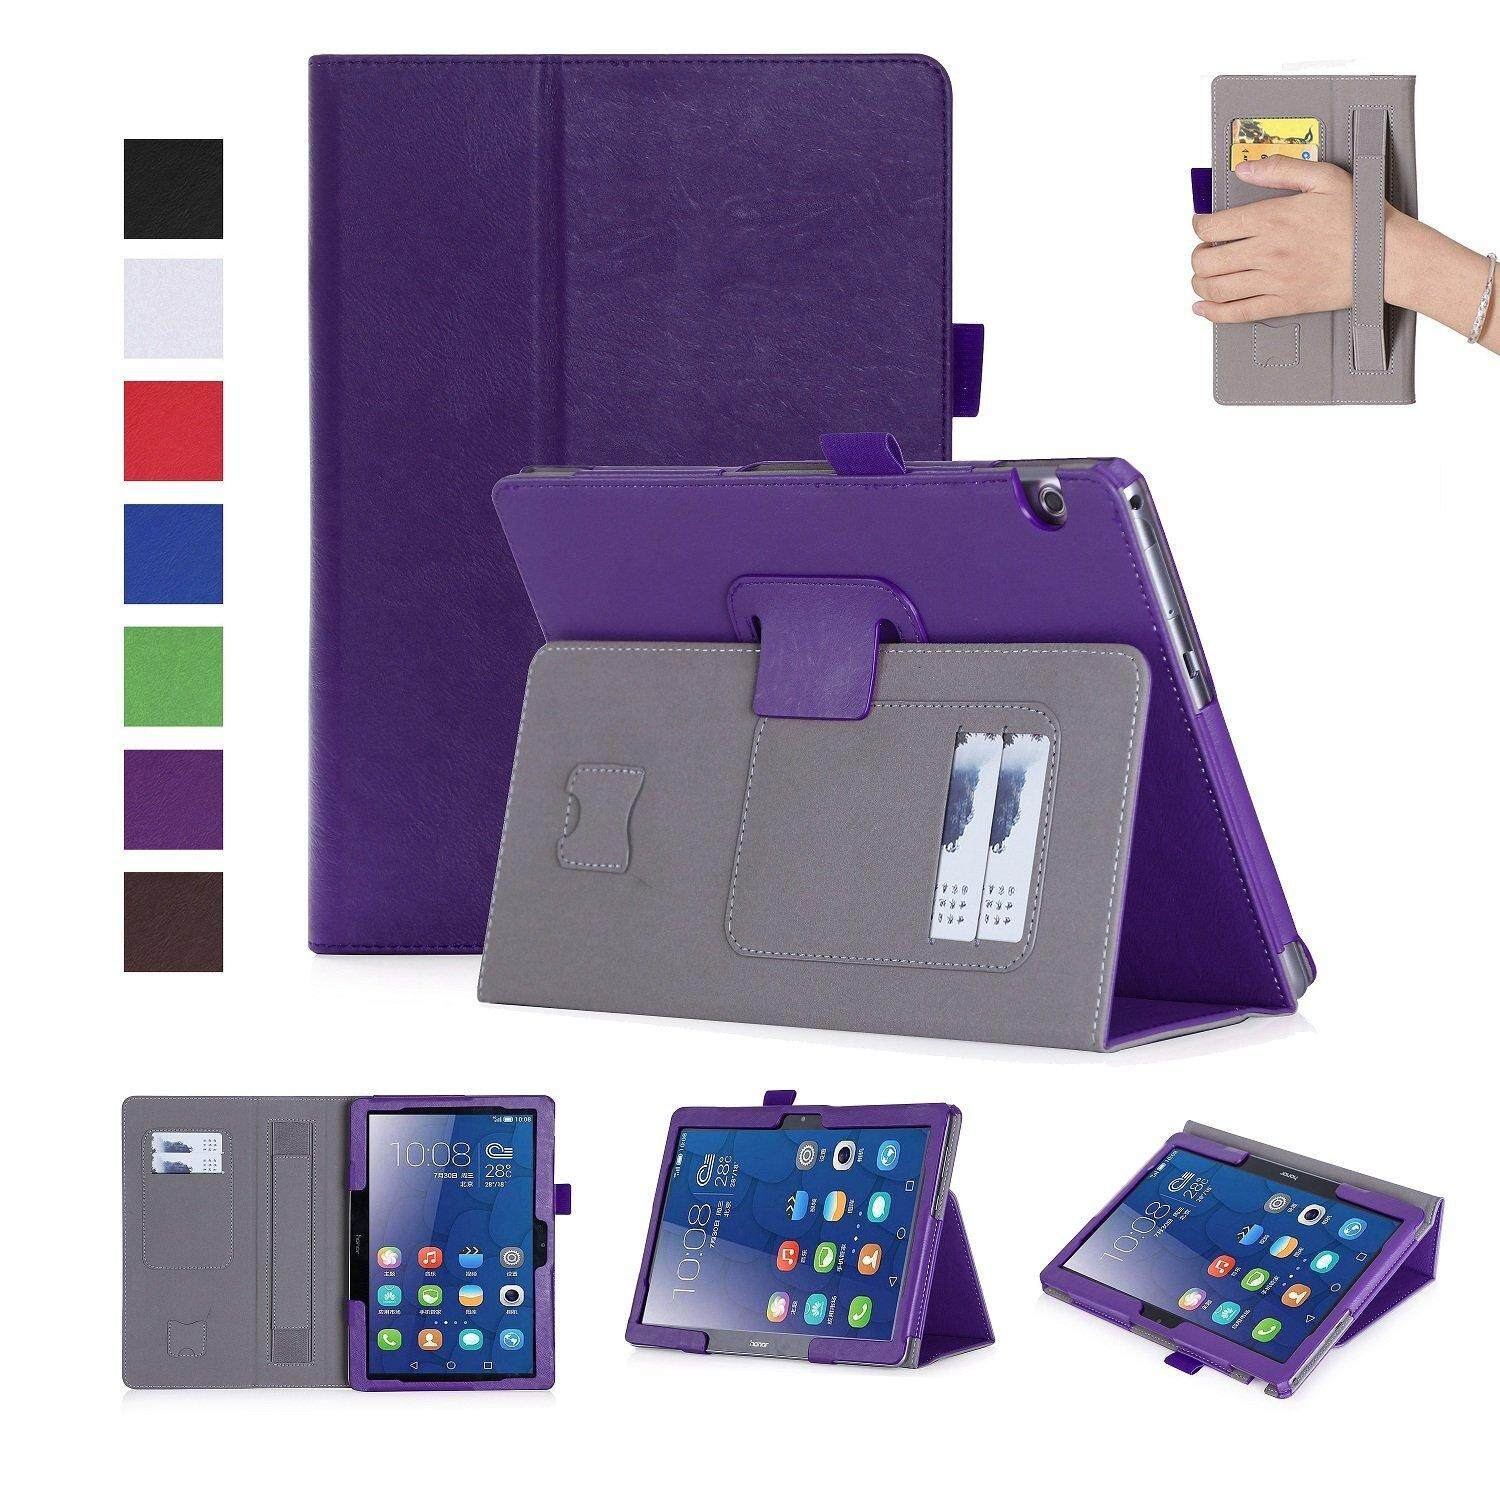 Premium PU Leather Case Stand Cover for Huawei MediaPad T3 10 AGS-W09 AGS-L09 and AGS-L03 9.6 inch WIFI 4G LTE Tablet with Velcro Hand Strap and Card Slots (Purple) - intl